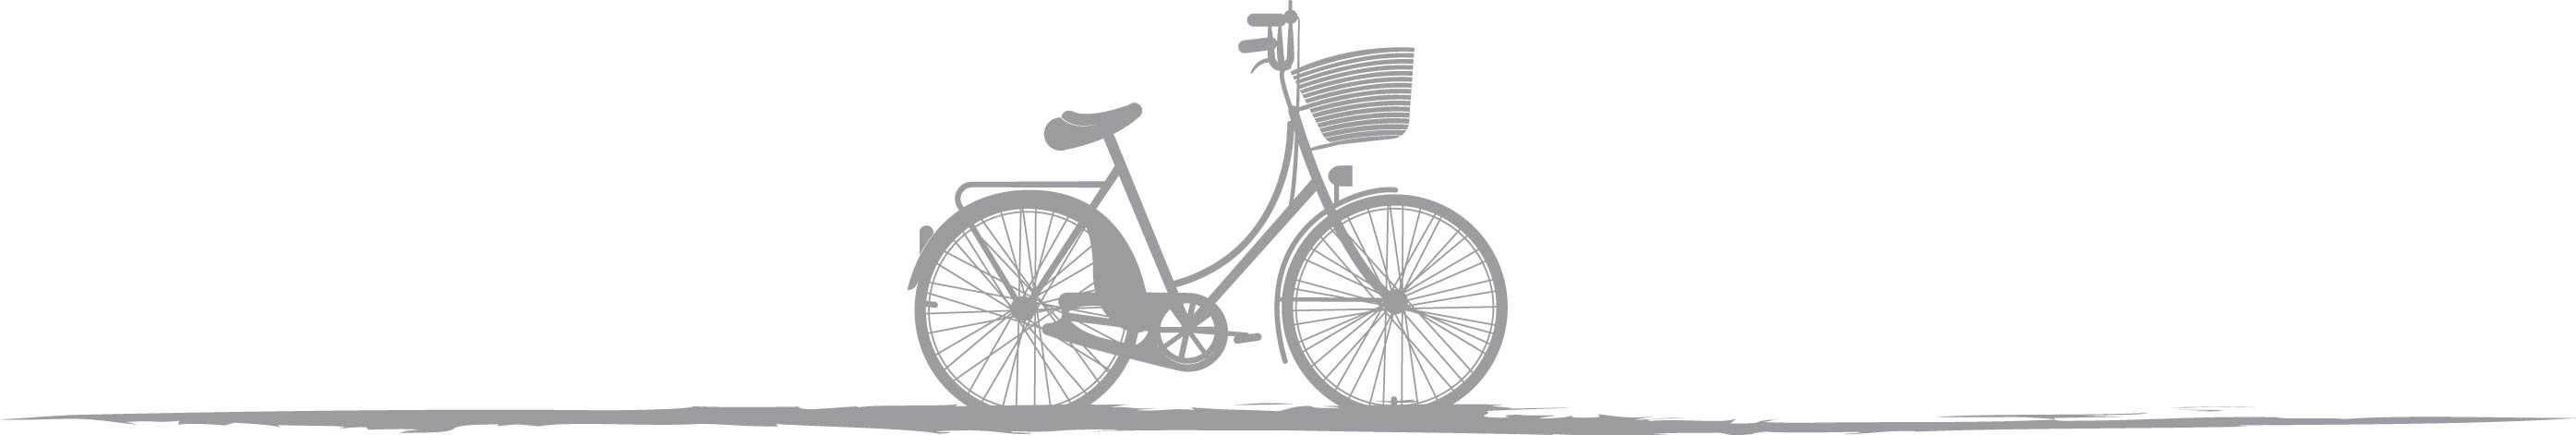 agritourism bicycle sketch